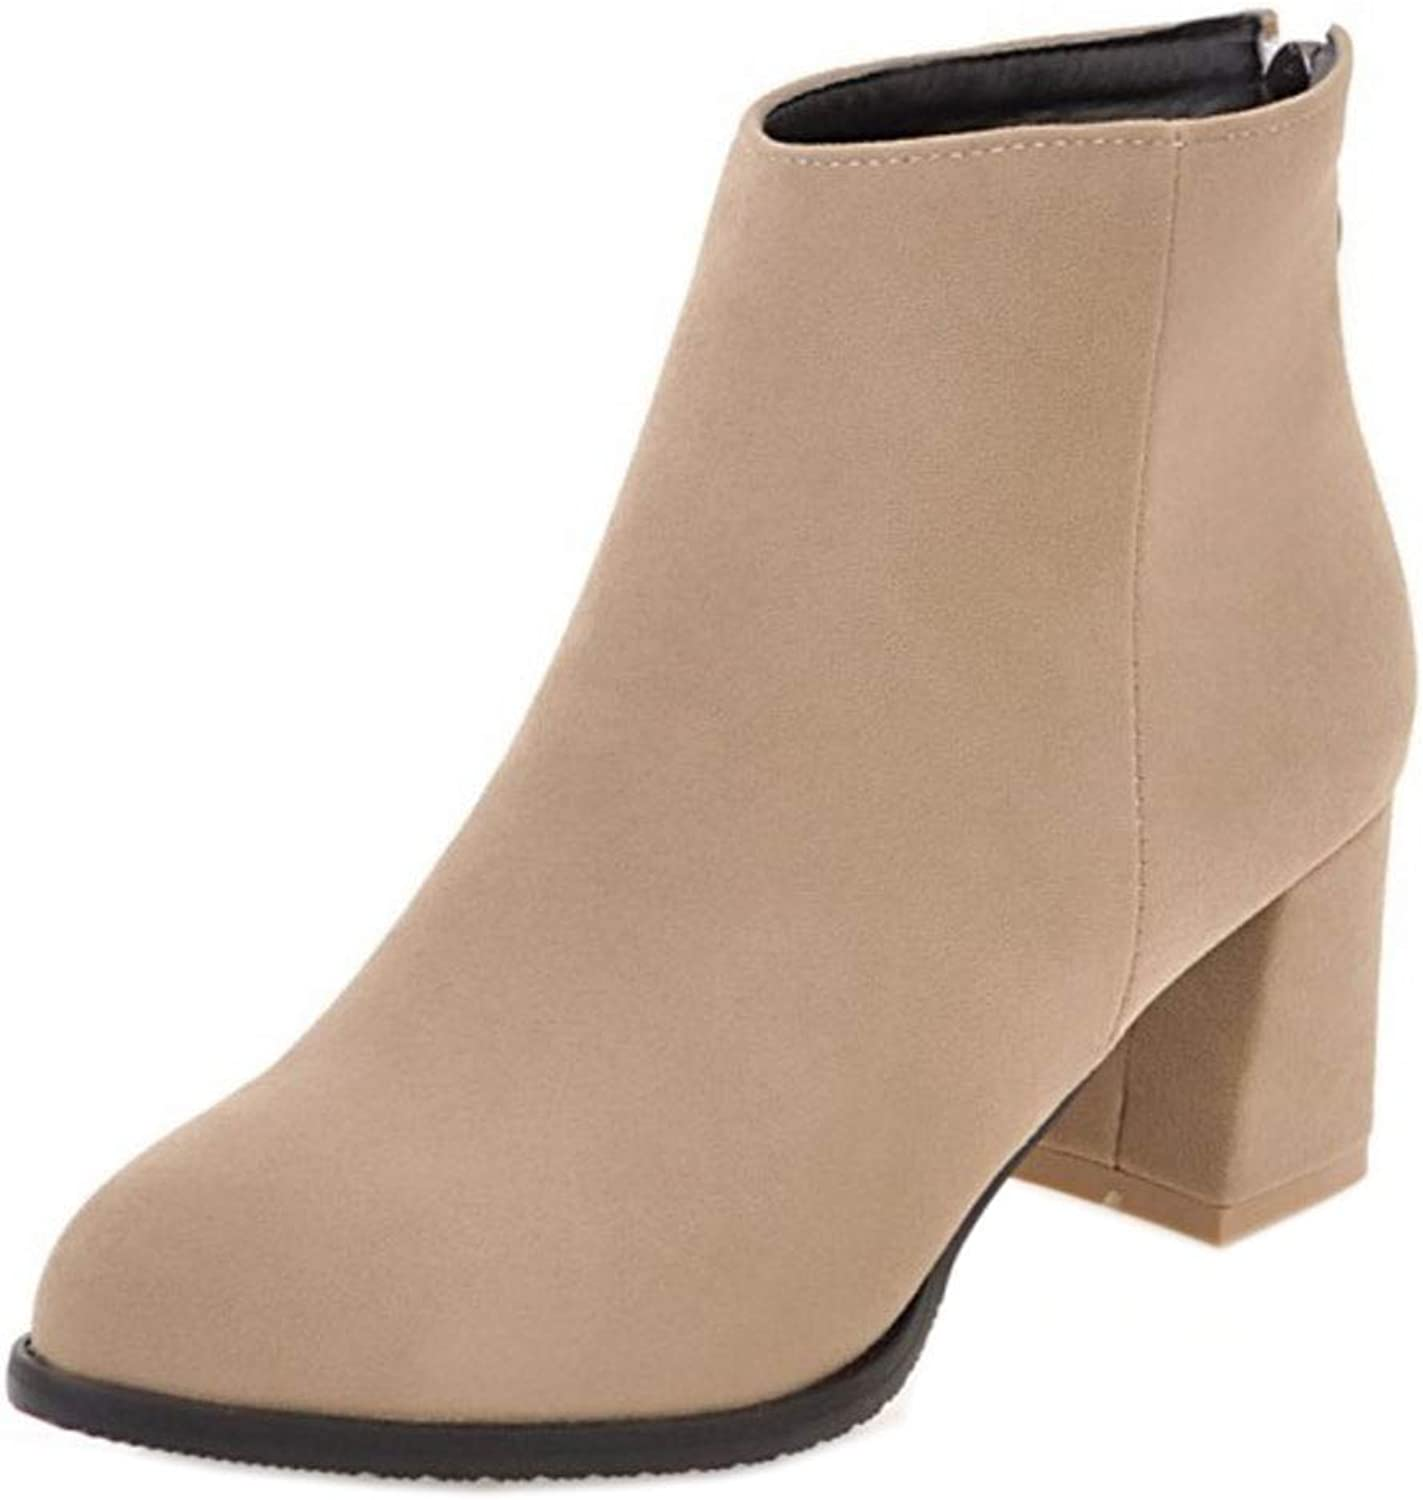 Unm Women's Simple Mid Heel Ankle Boots Zipper